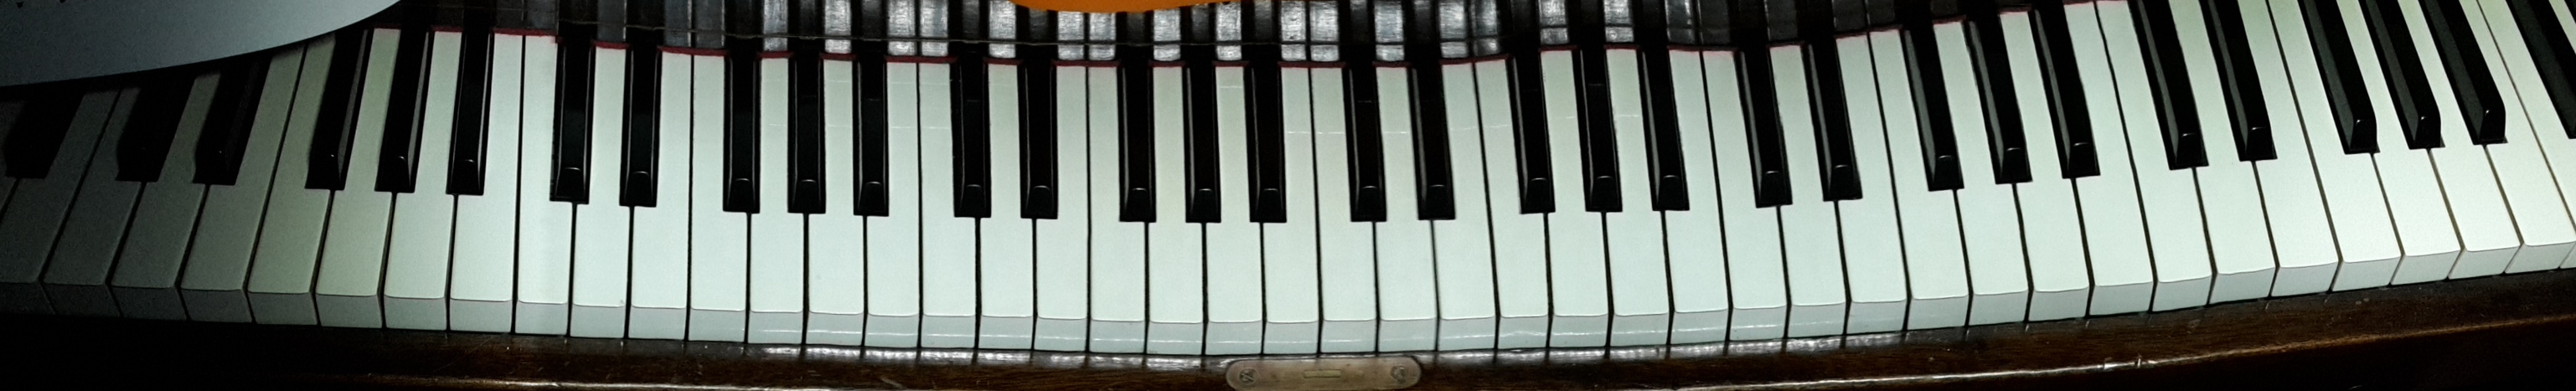 My piano keyboard!